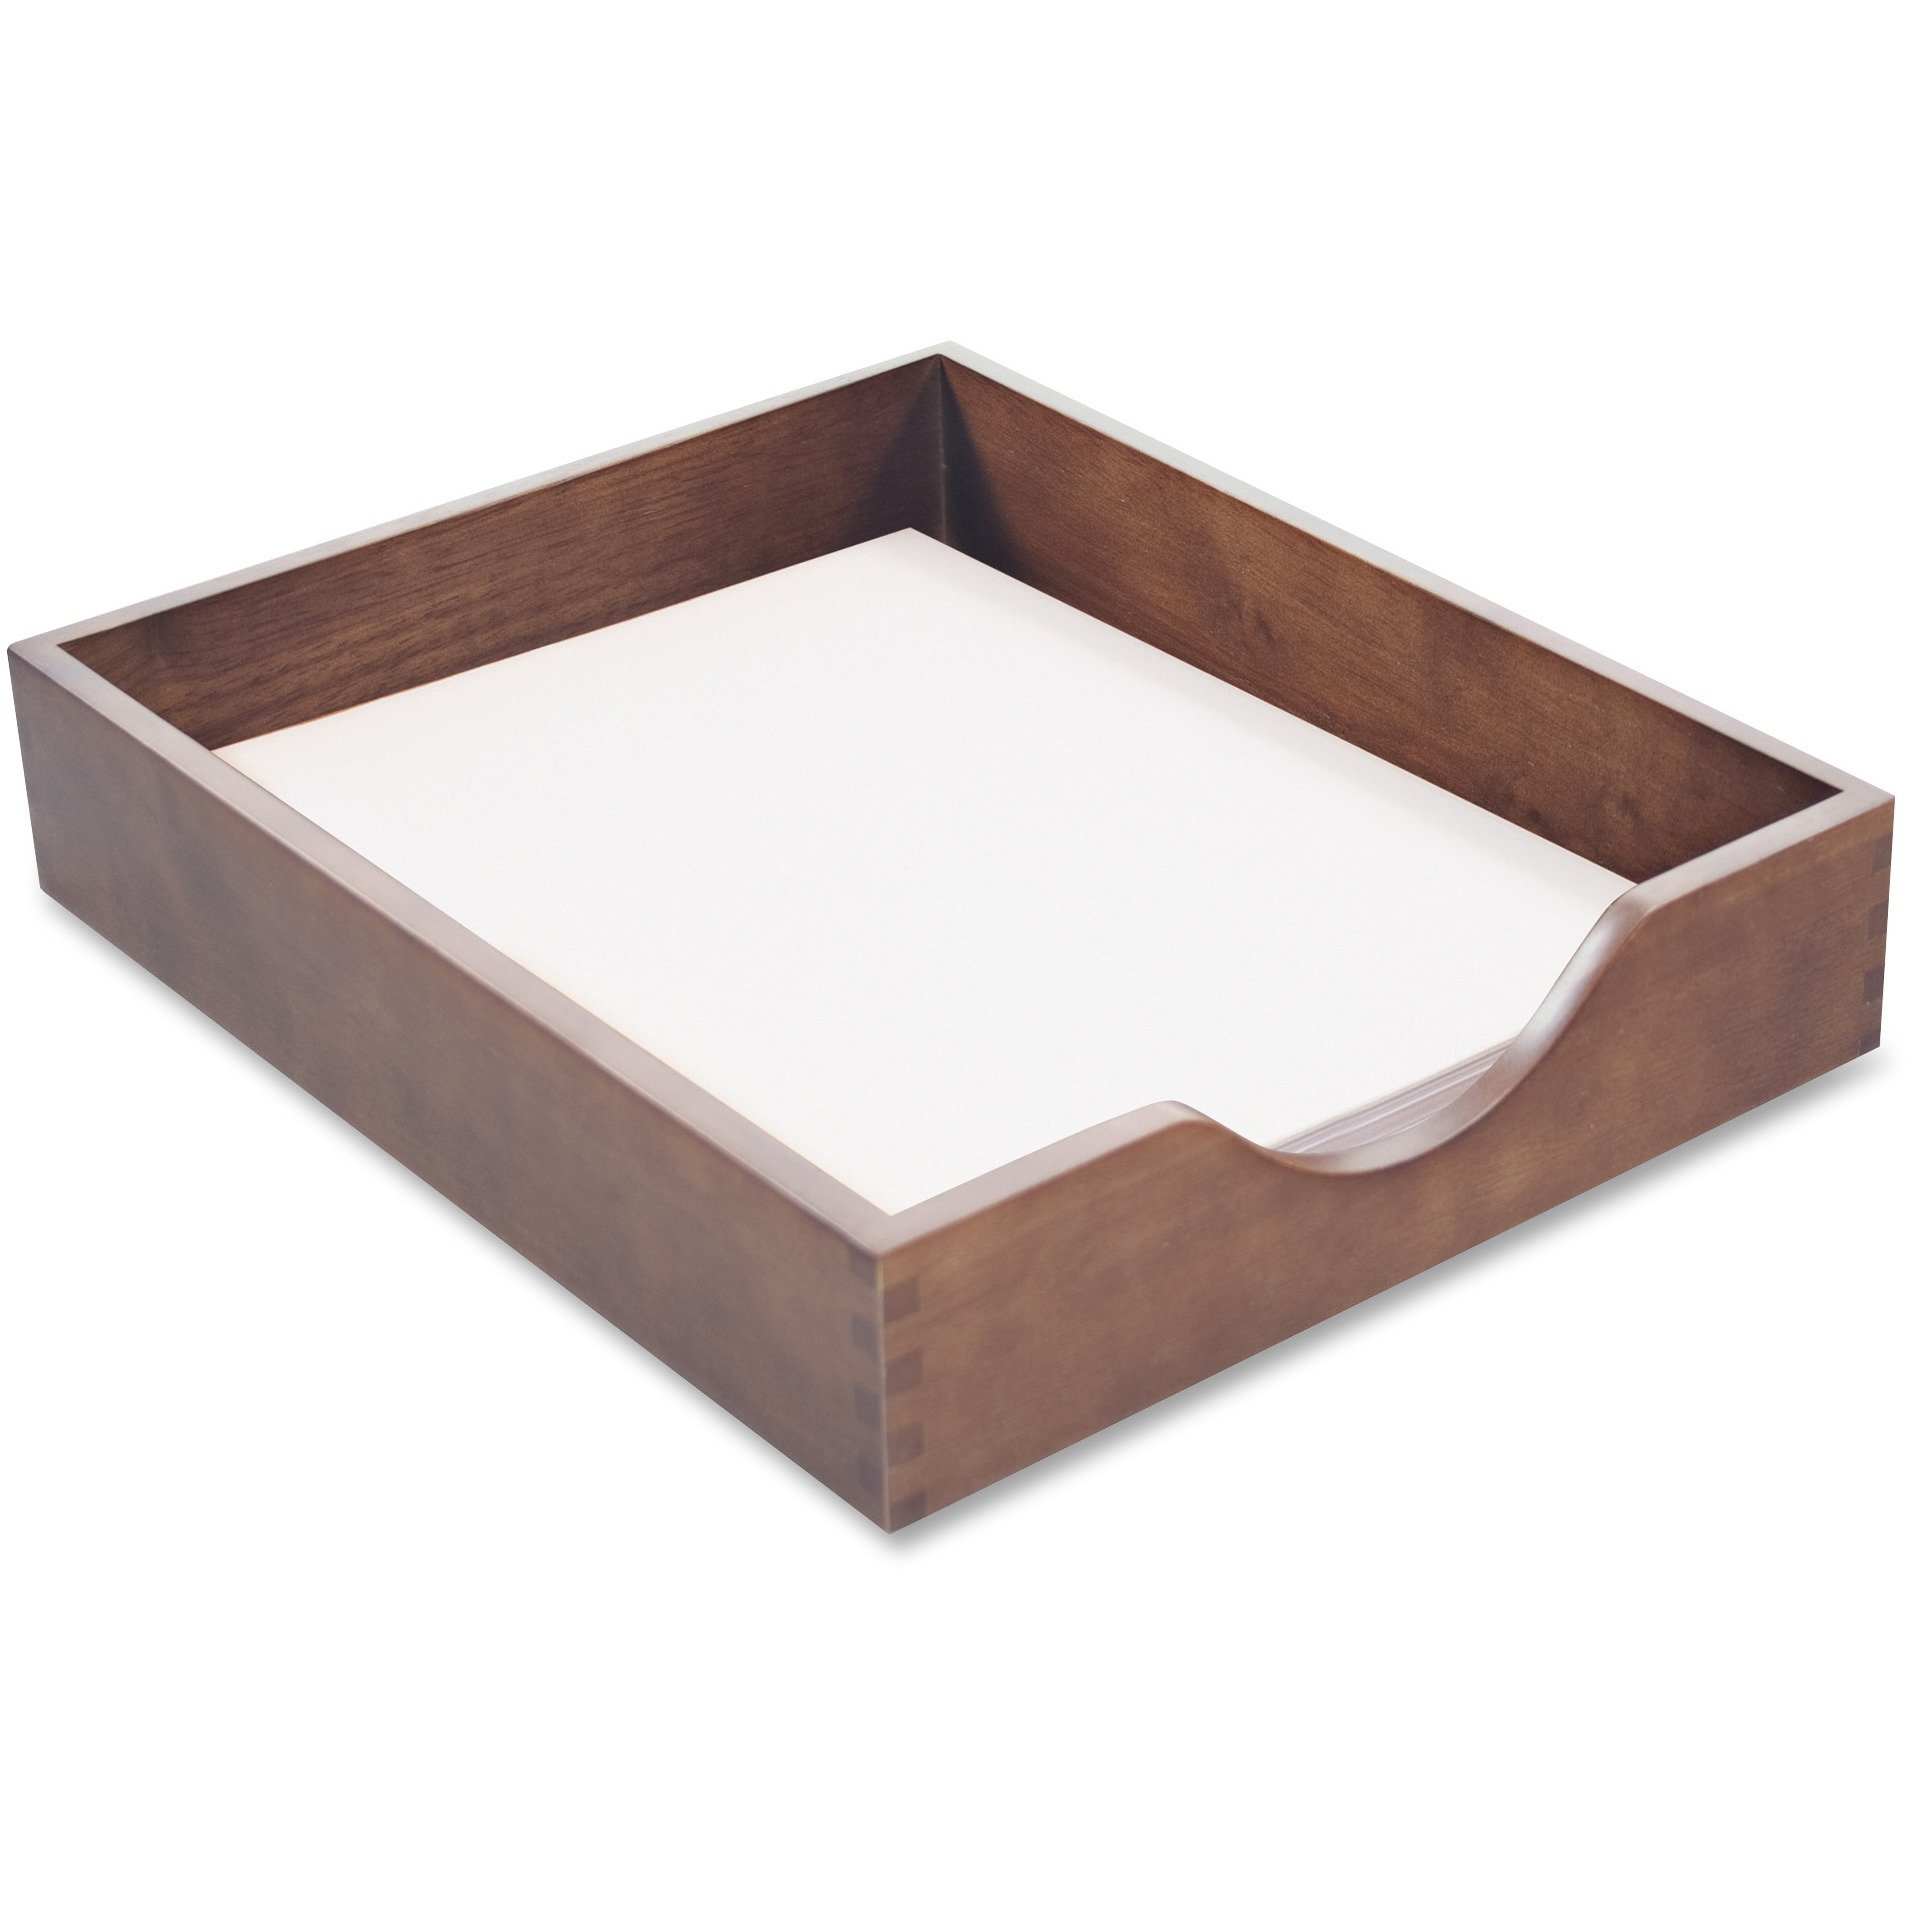 Carver Wood Products, INC. Products - Wood Desk Tray, Letter Size, Walnut - Sold as 1 EA - Desk tray is made of solid oak with walnut finish. Includes a felt protector. Tray requires a set of Carver supports for stacking.